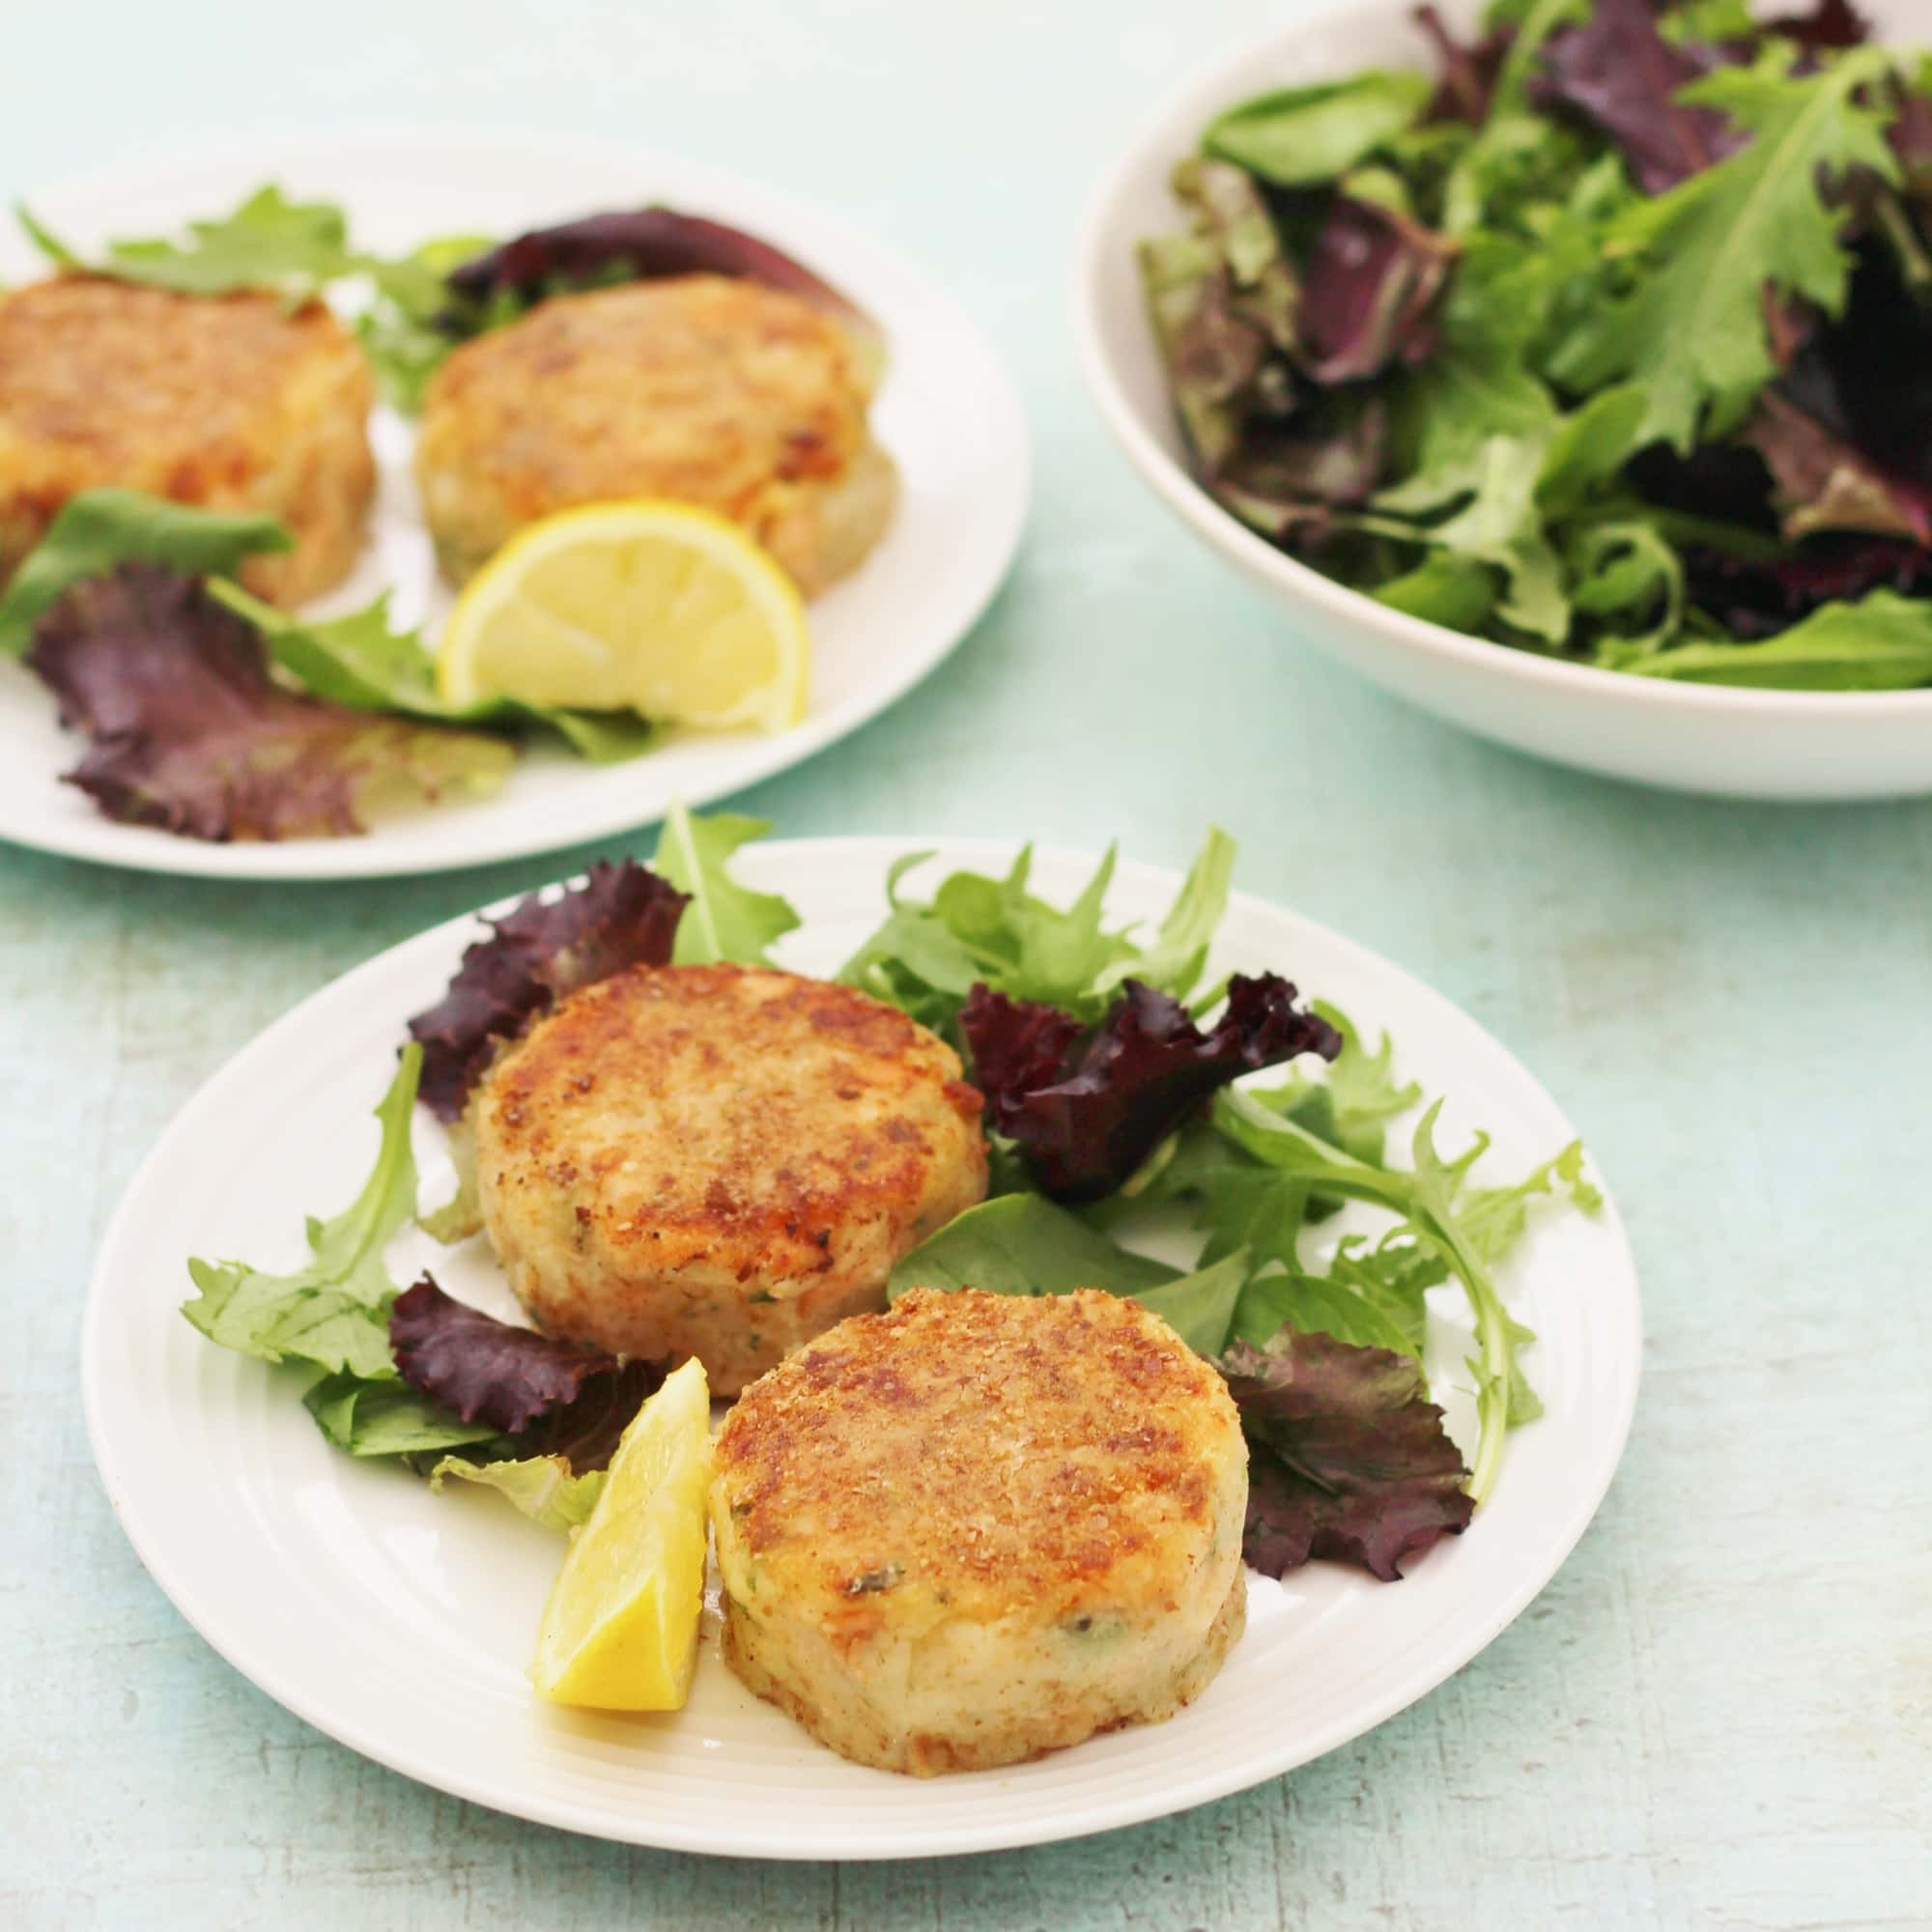 How to make fish cakes using canned salmon howsto co for How to make fish patties